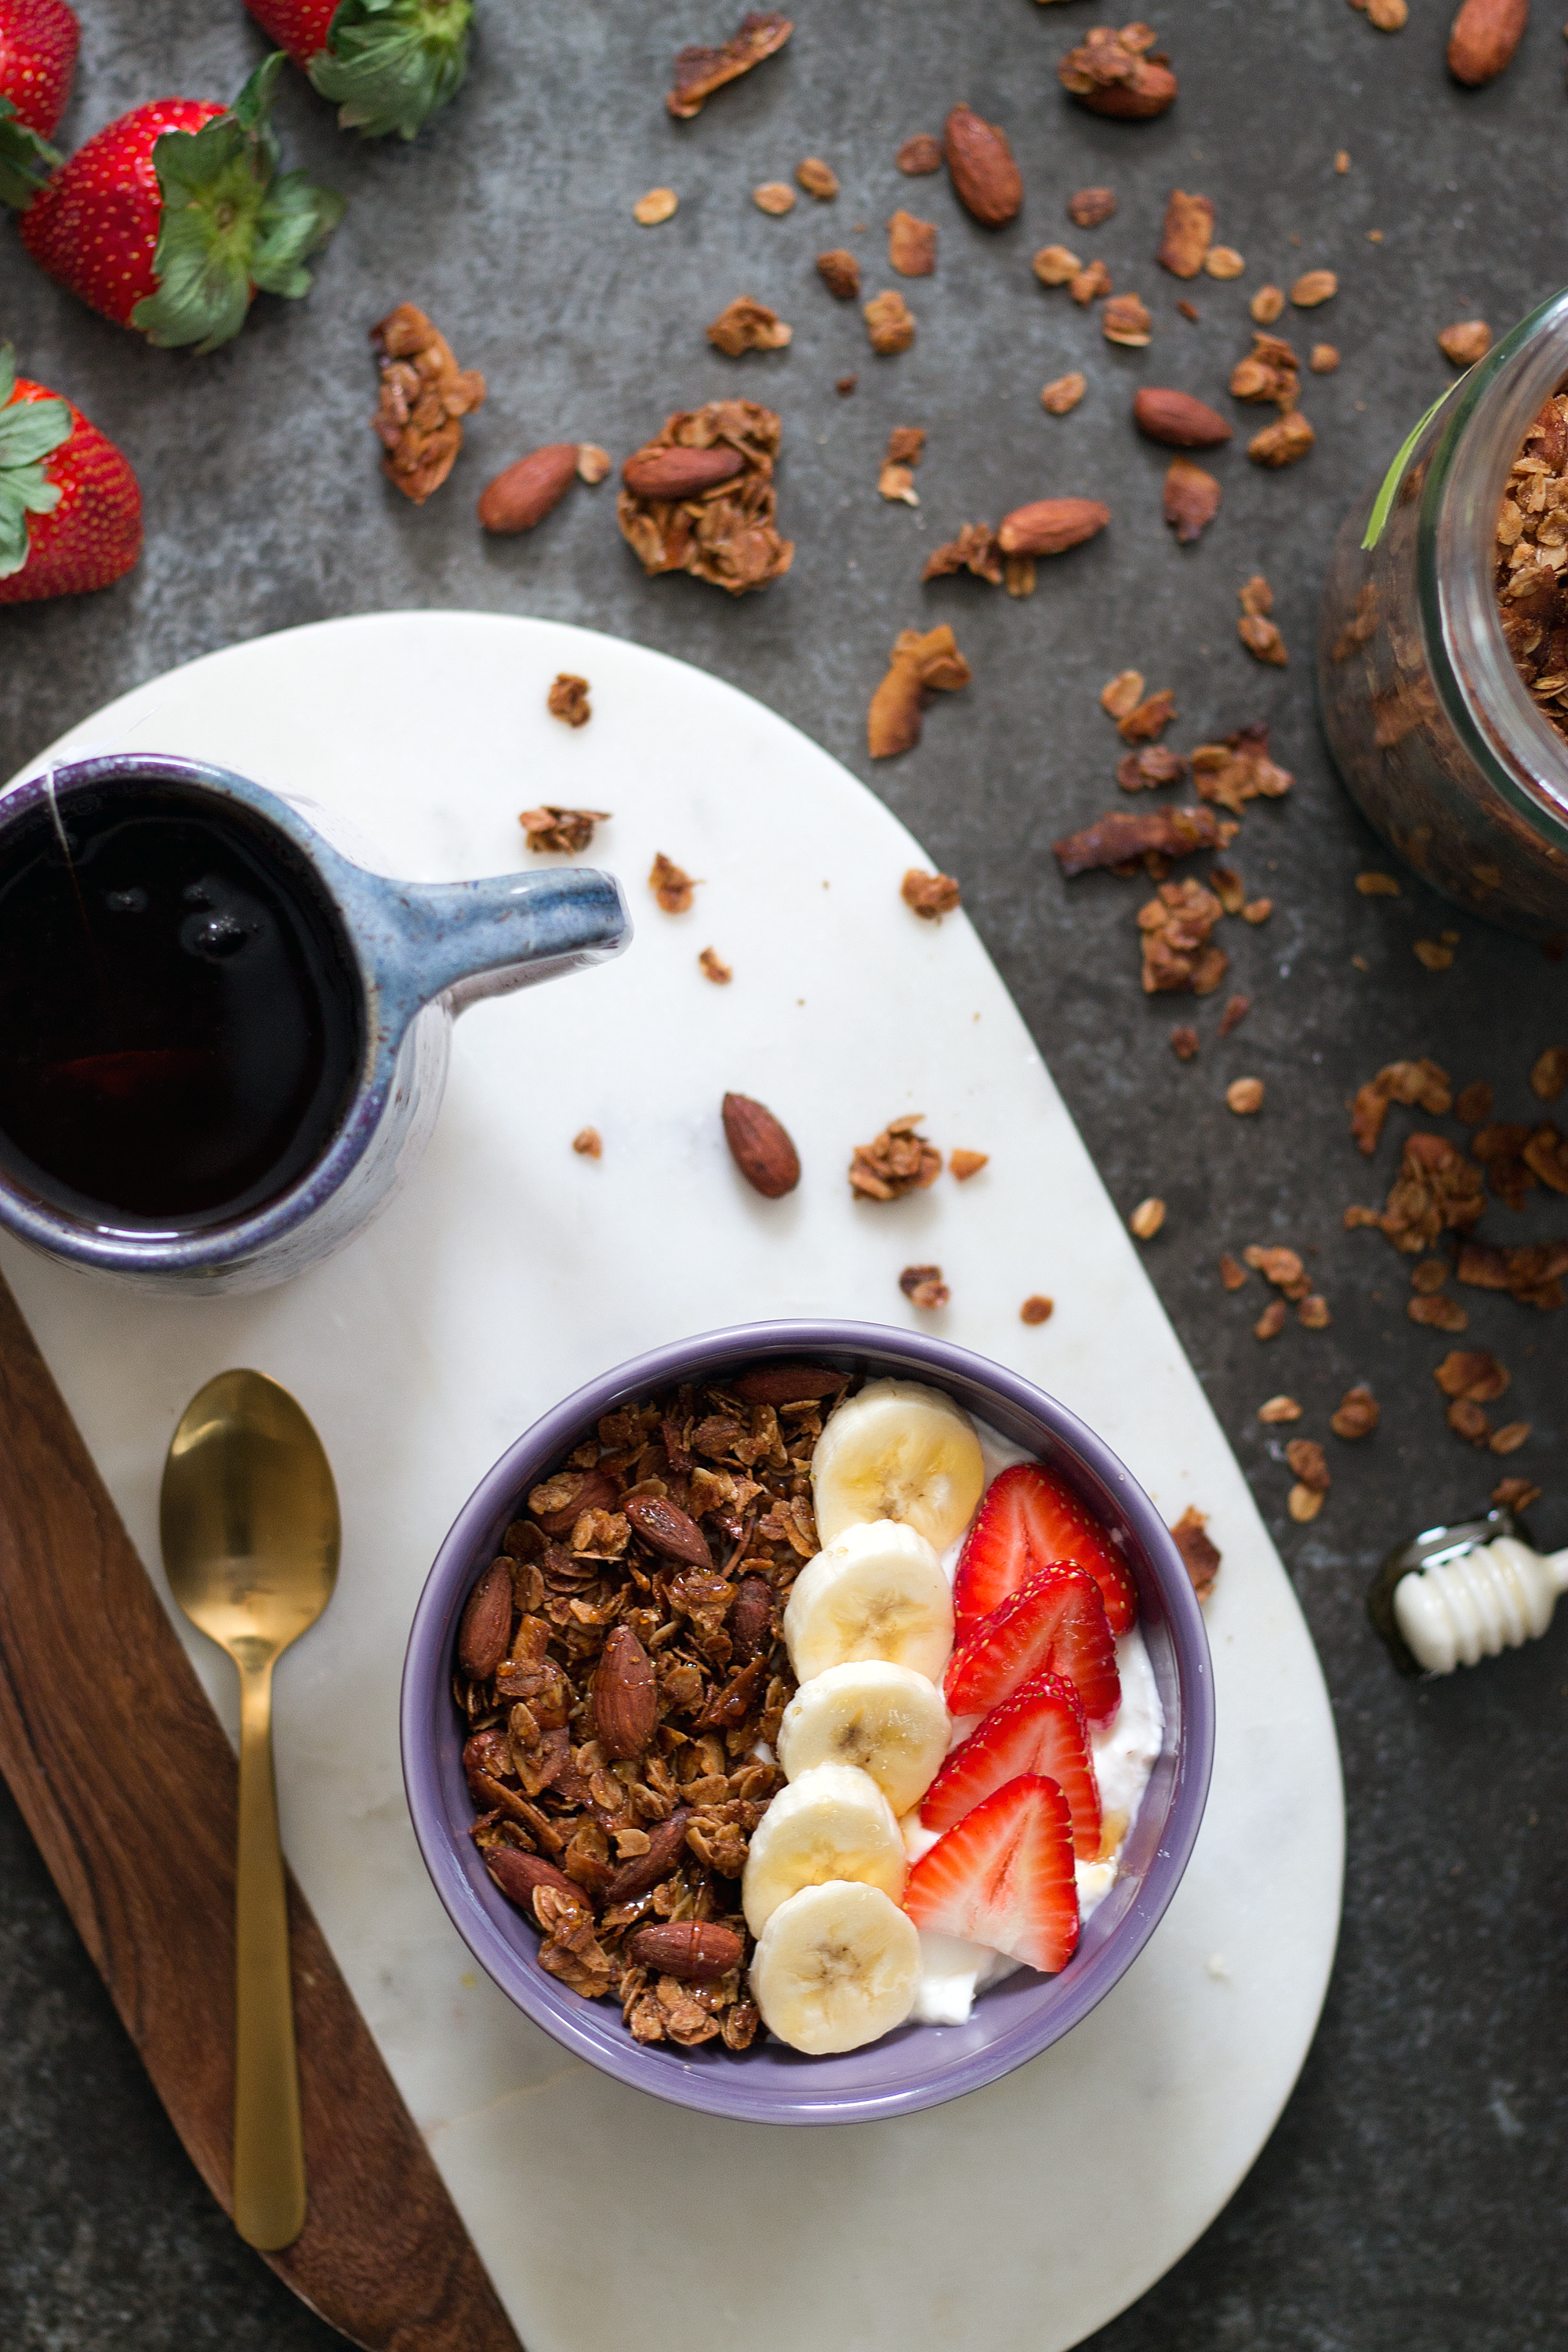 Granola with cinnamon, almonds, and coconut. Unusually Lovely blog